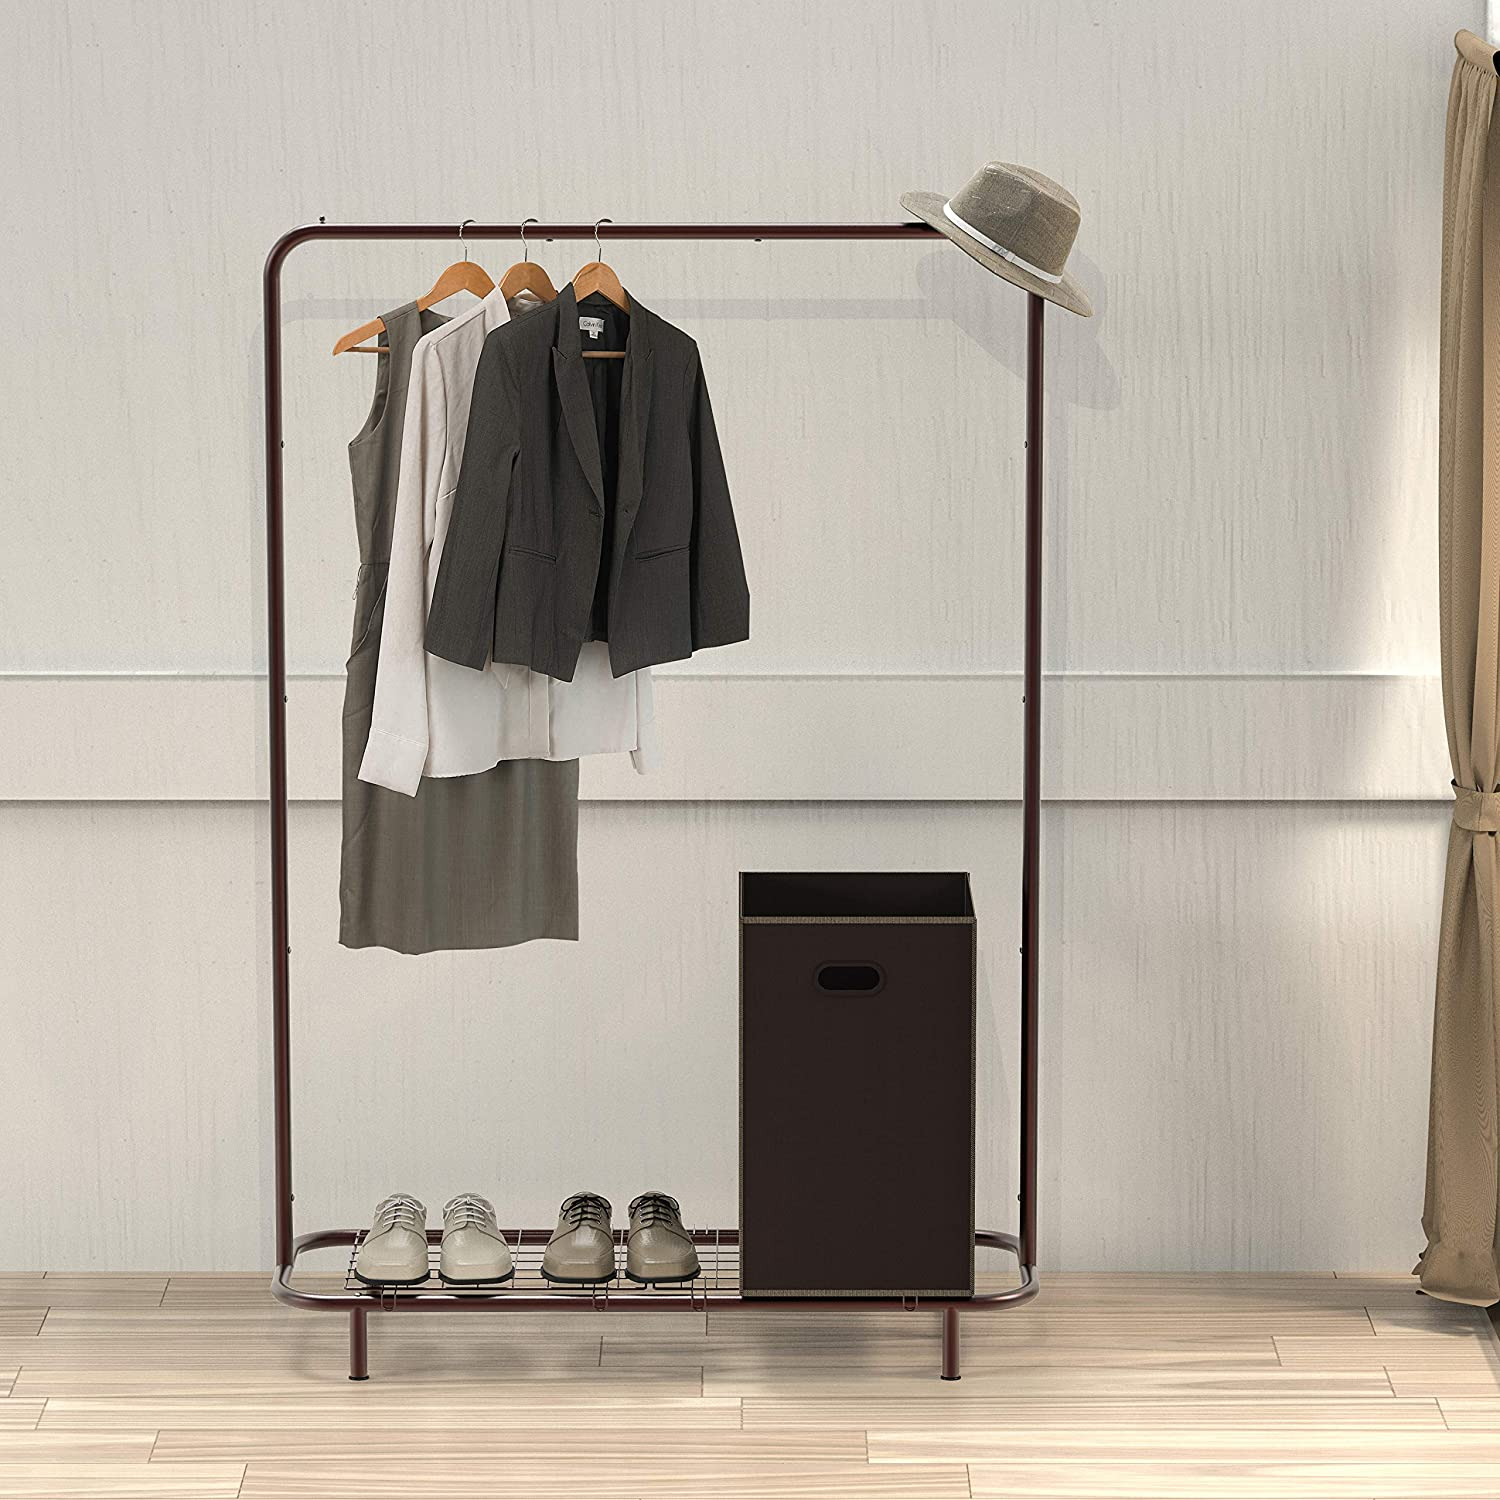 Simple Houseware Industrial Pipe Clothing Garment Rack with Bottom Shelves, Bronze: Home & Kitchen